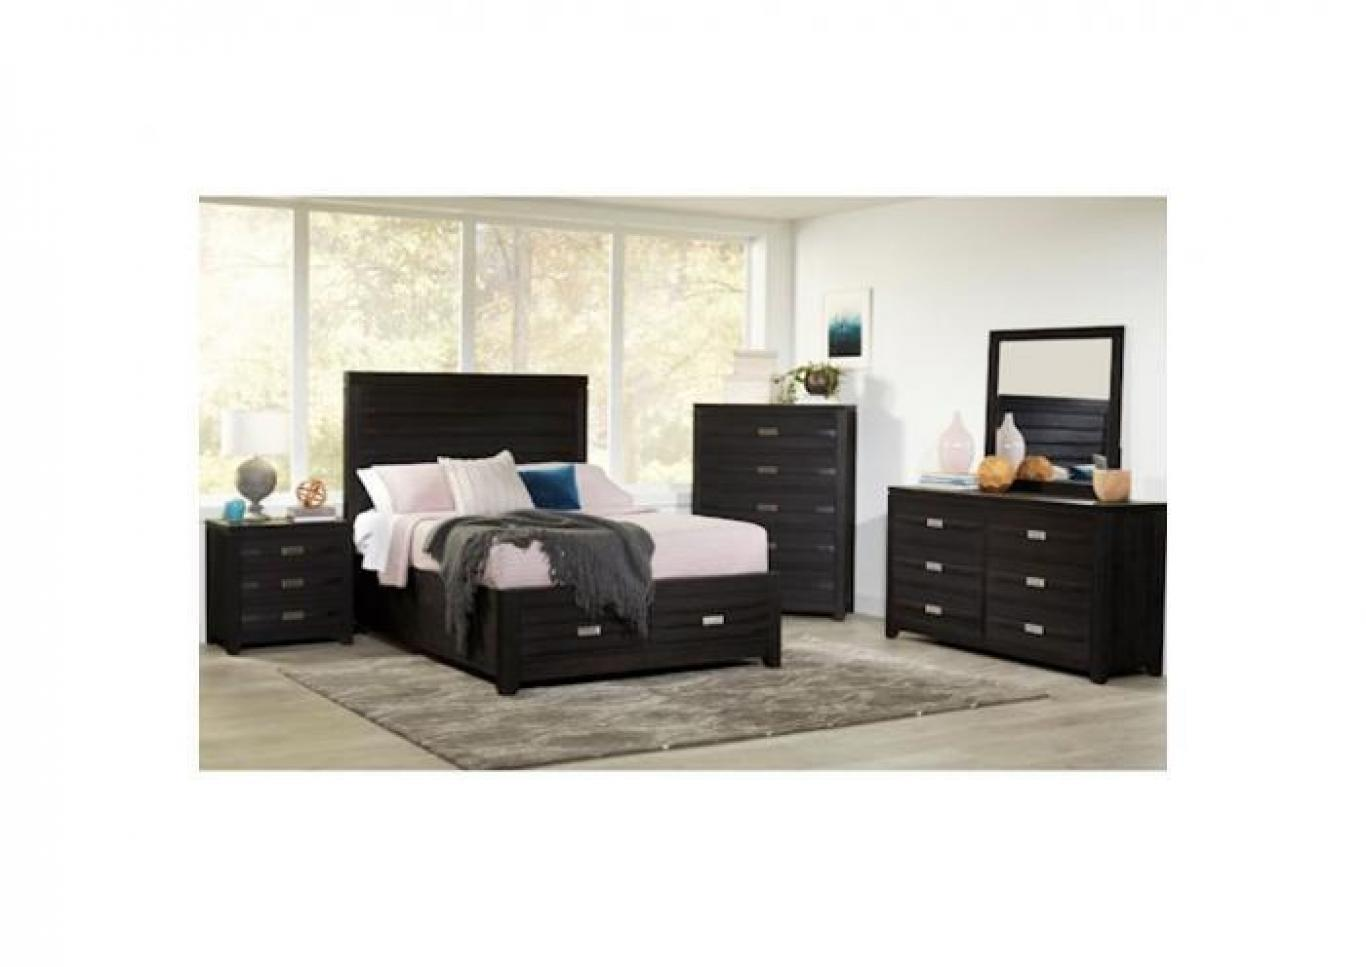 Altima Black Storage Platform Bed Eastern King,Instore